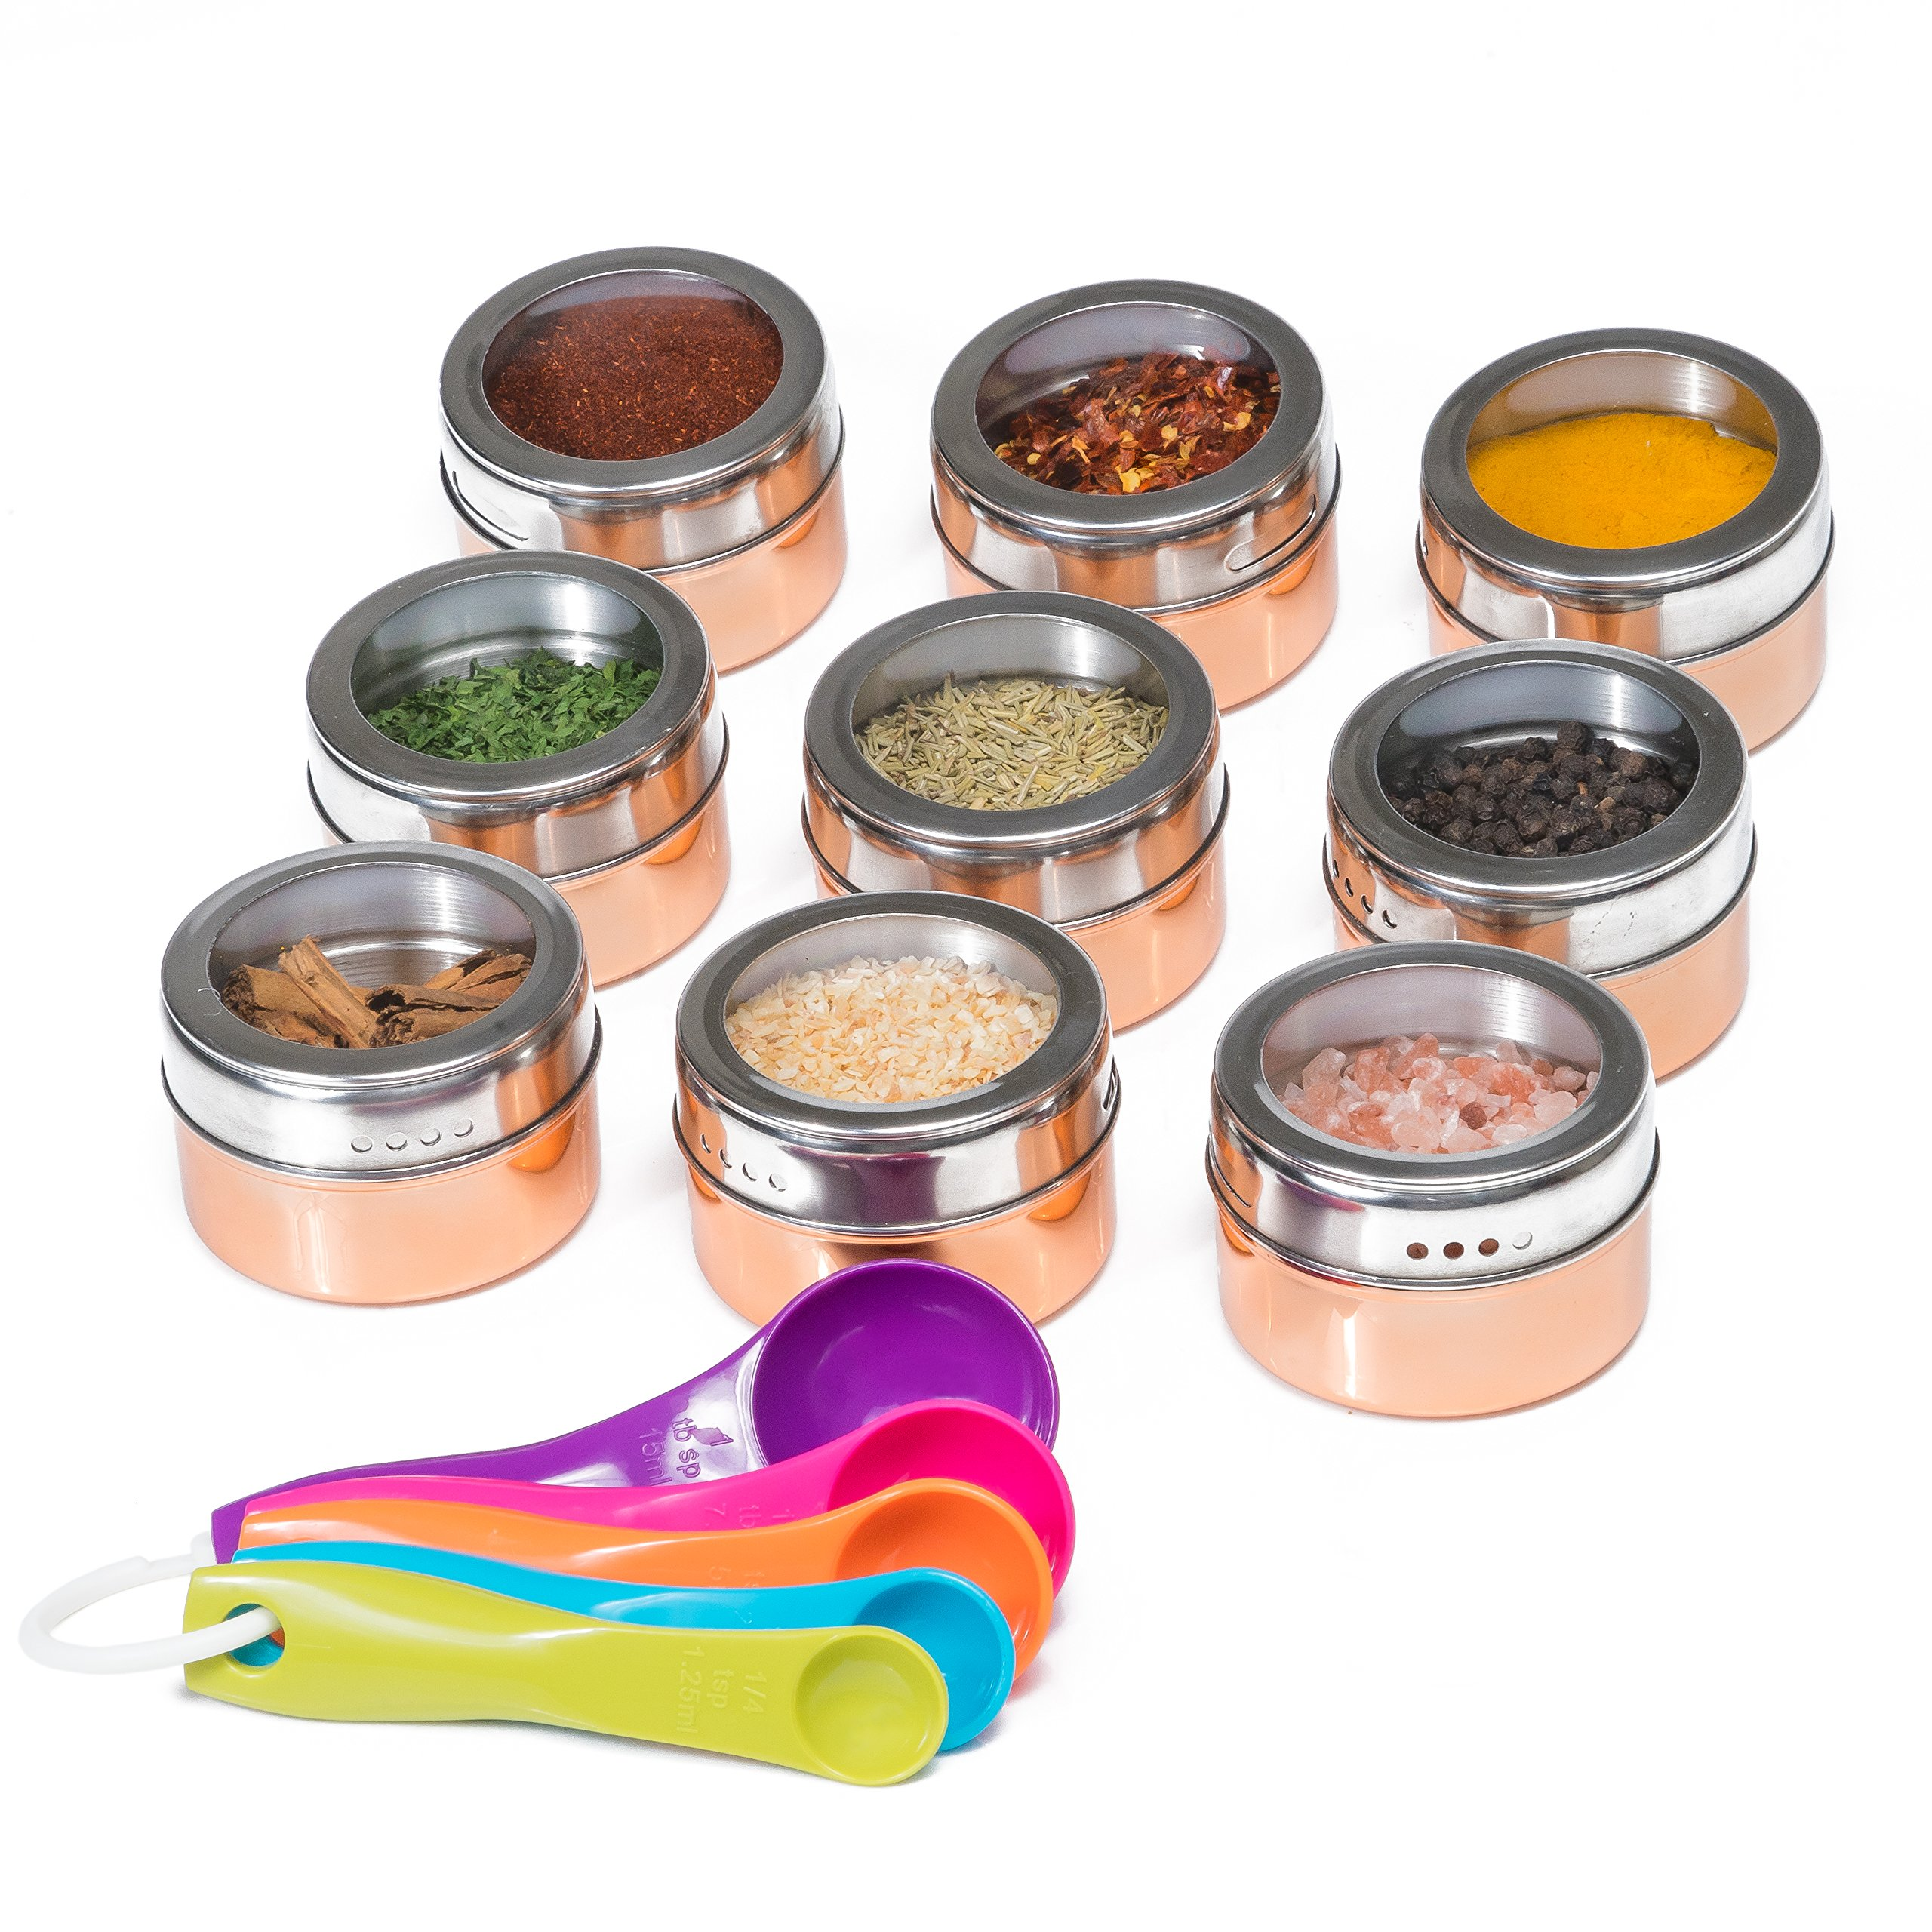 Nellam Stainless Steel Magnetic Spice Jars – Bonus Measuring Spoon Set – Airtight Kitchen Storage Containers – Stack on Fridge to Save Counter & Cupboard Space – 9pc Organizers in Gold